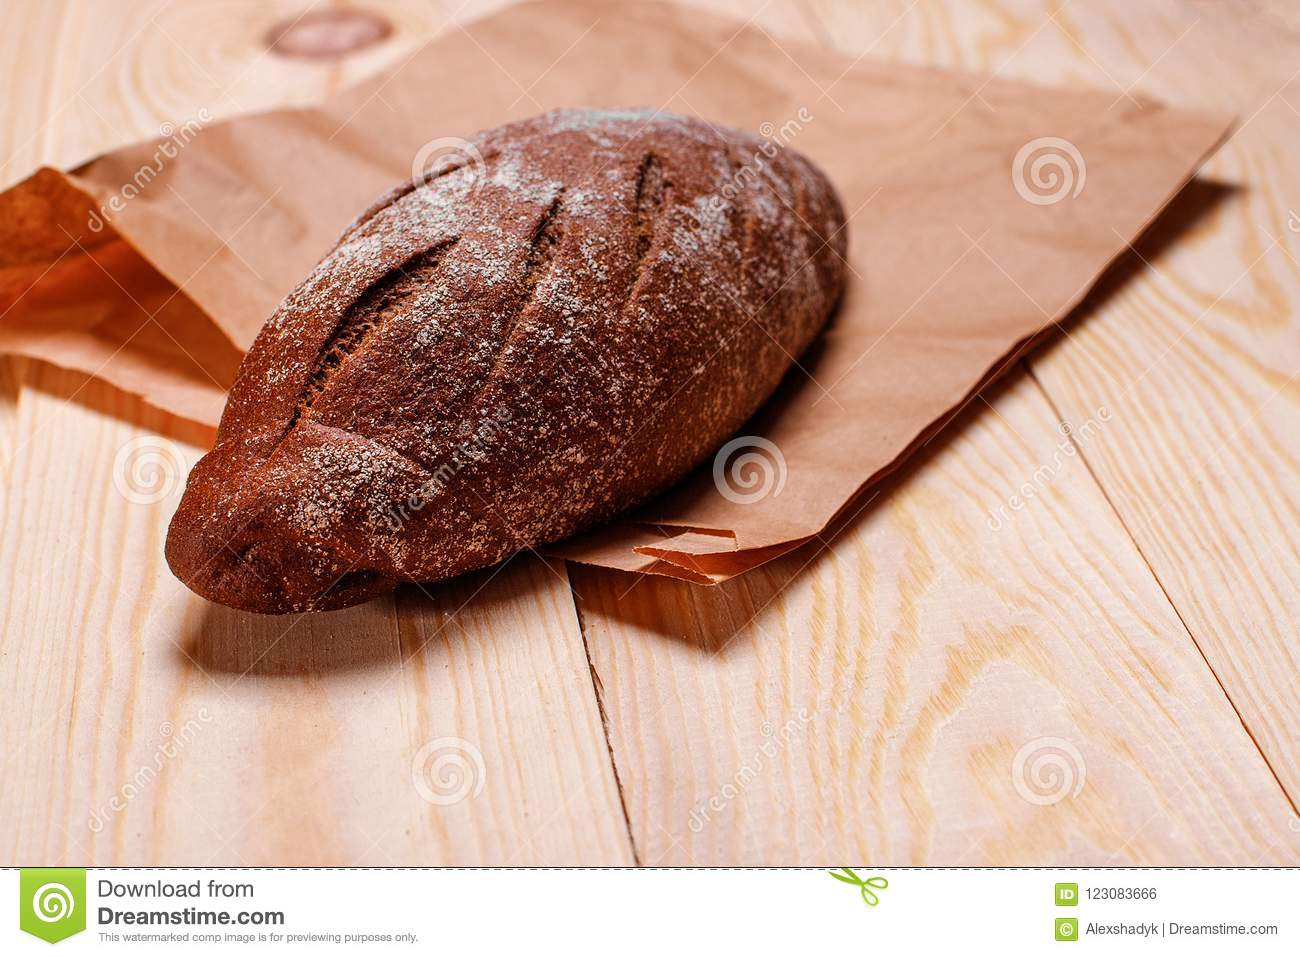 Homemade bread on paper bag. Baked product on wooden table. Close view